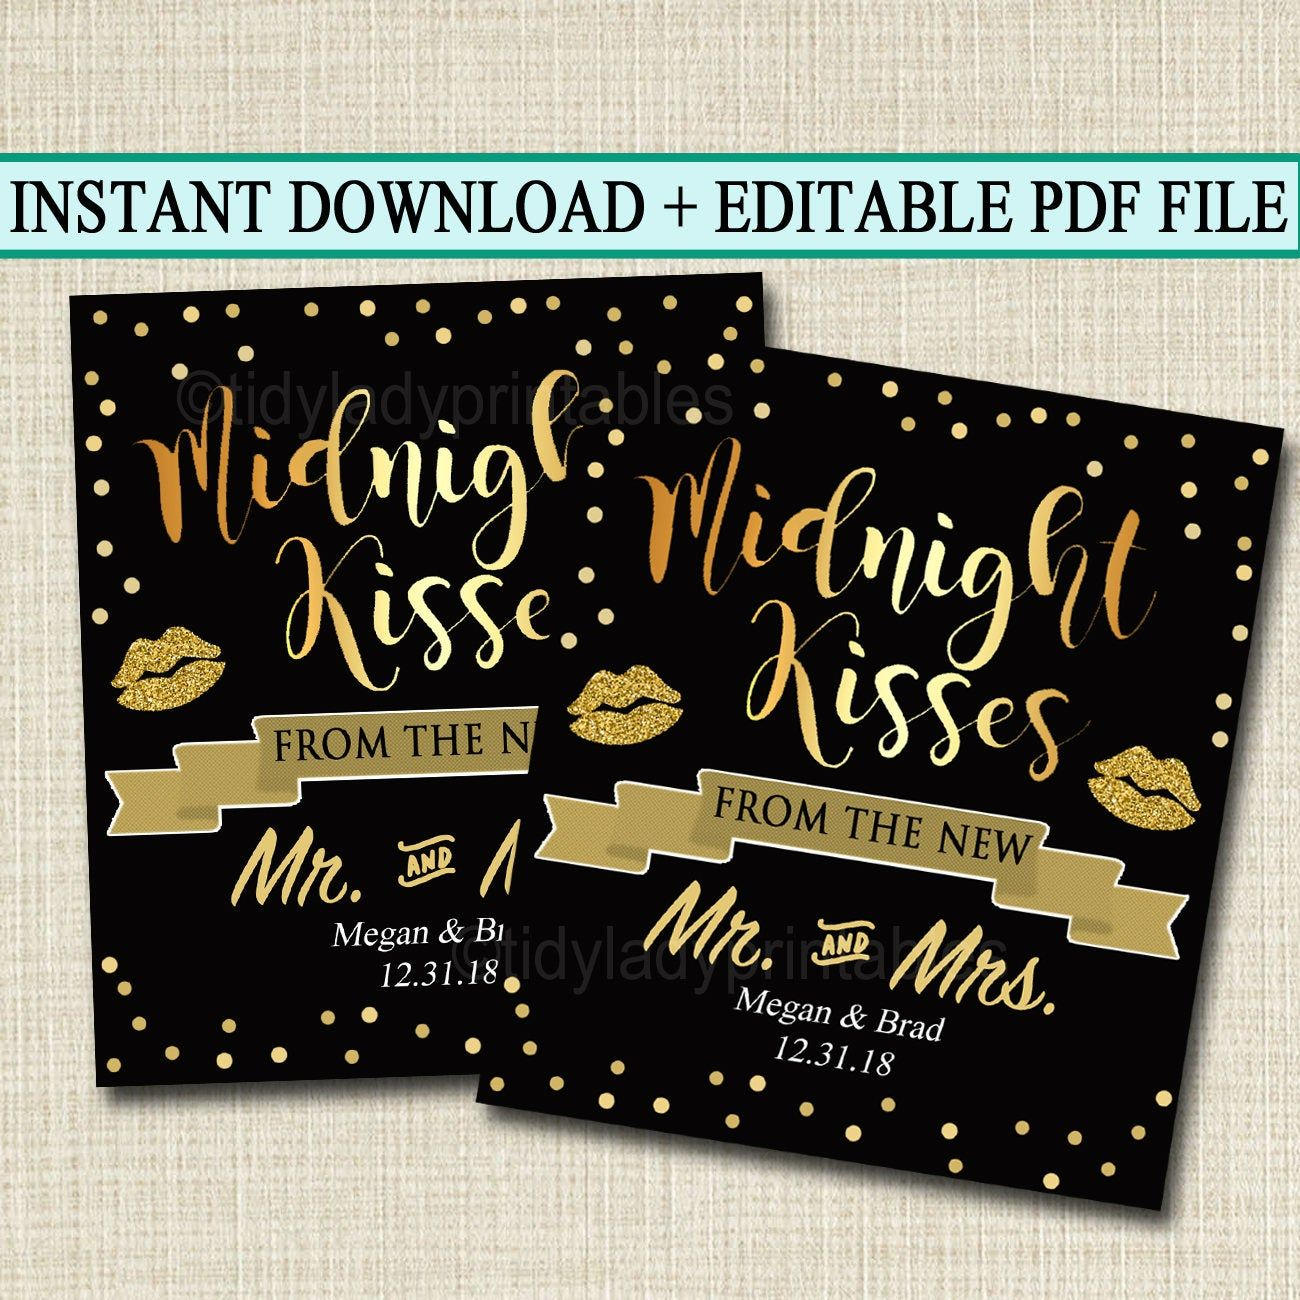 EDITABLE Midnight Kisses Wedding Favor Tags, From the Mr. and Mrs. New Years Eve Day Wedding Black and Gold Party Favor Tag INSTANT DOWNLOAD